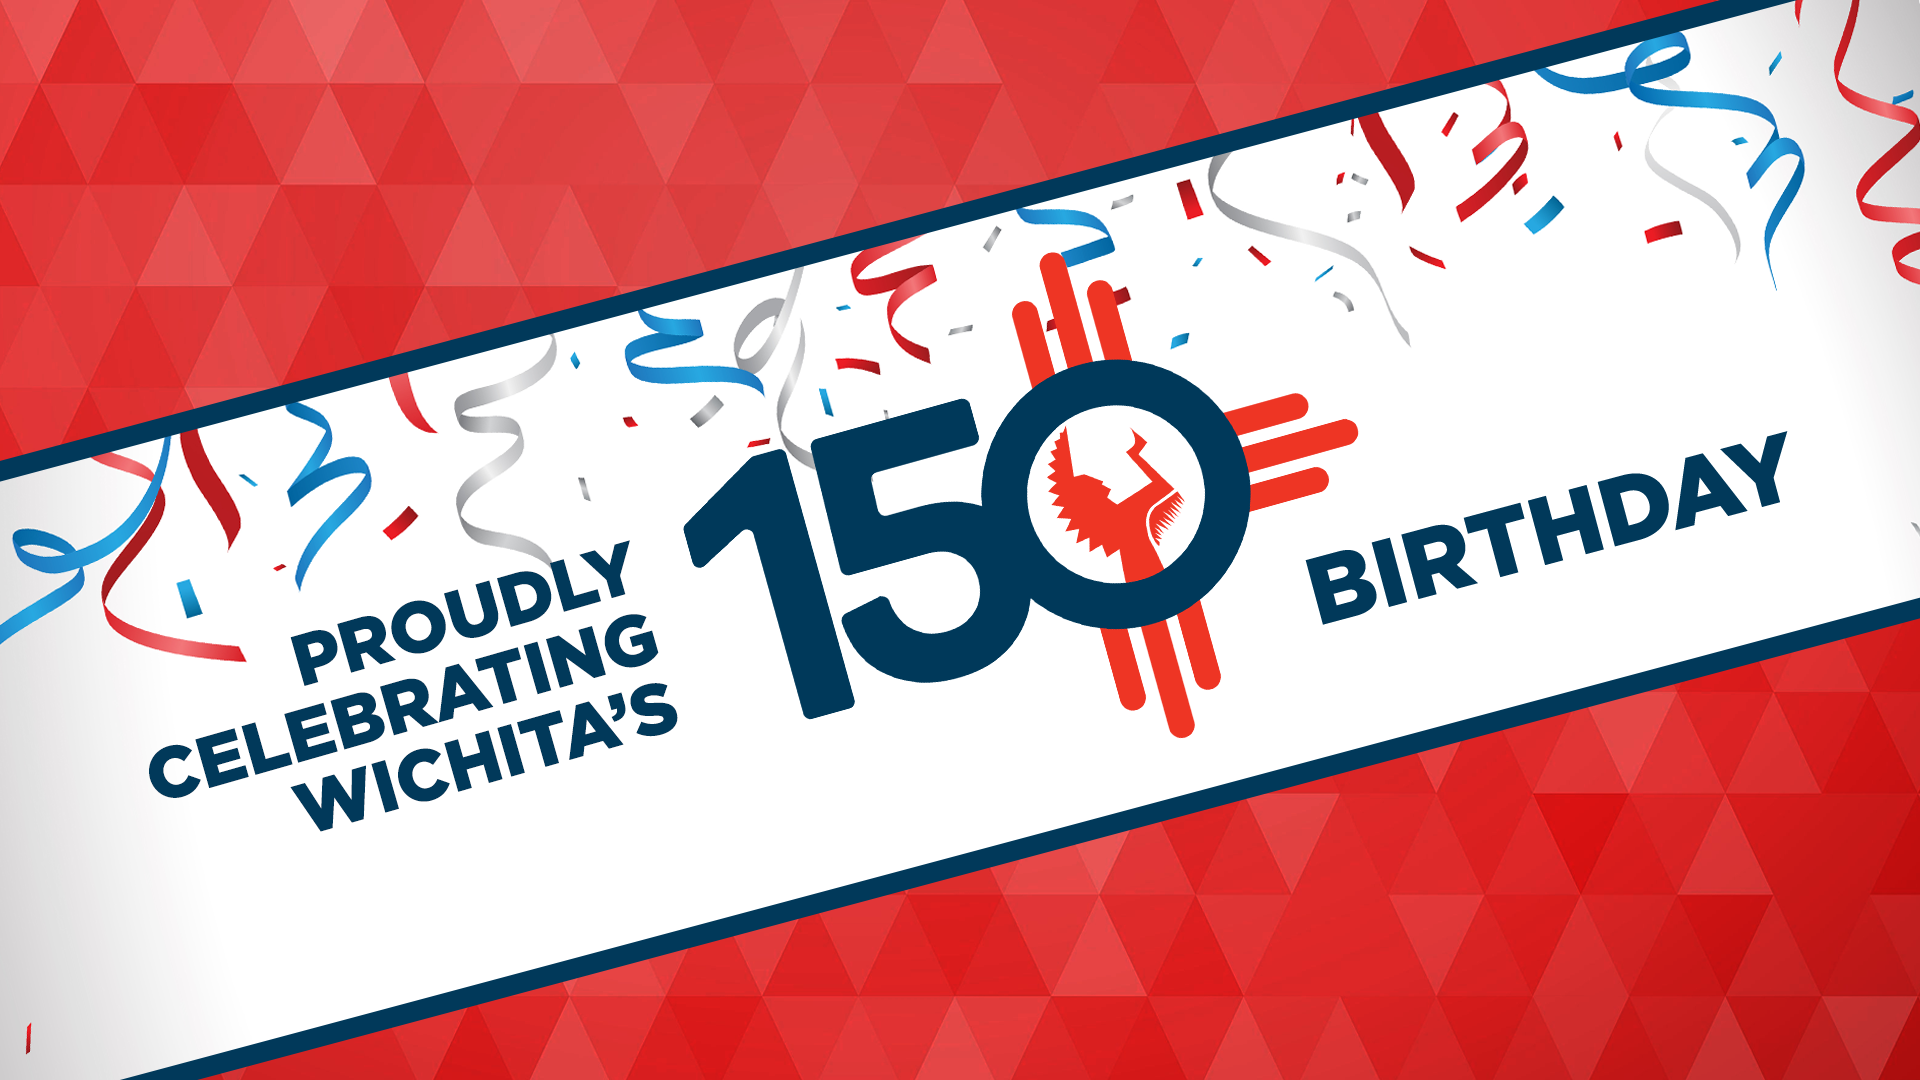 150th-Anniversary-Wichita-1920x1080-1